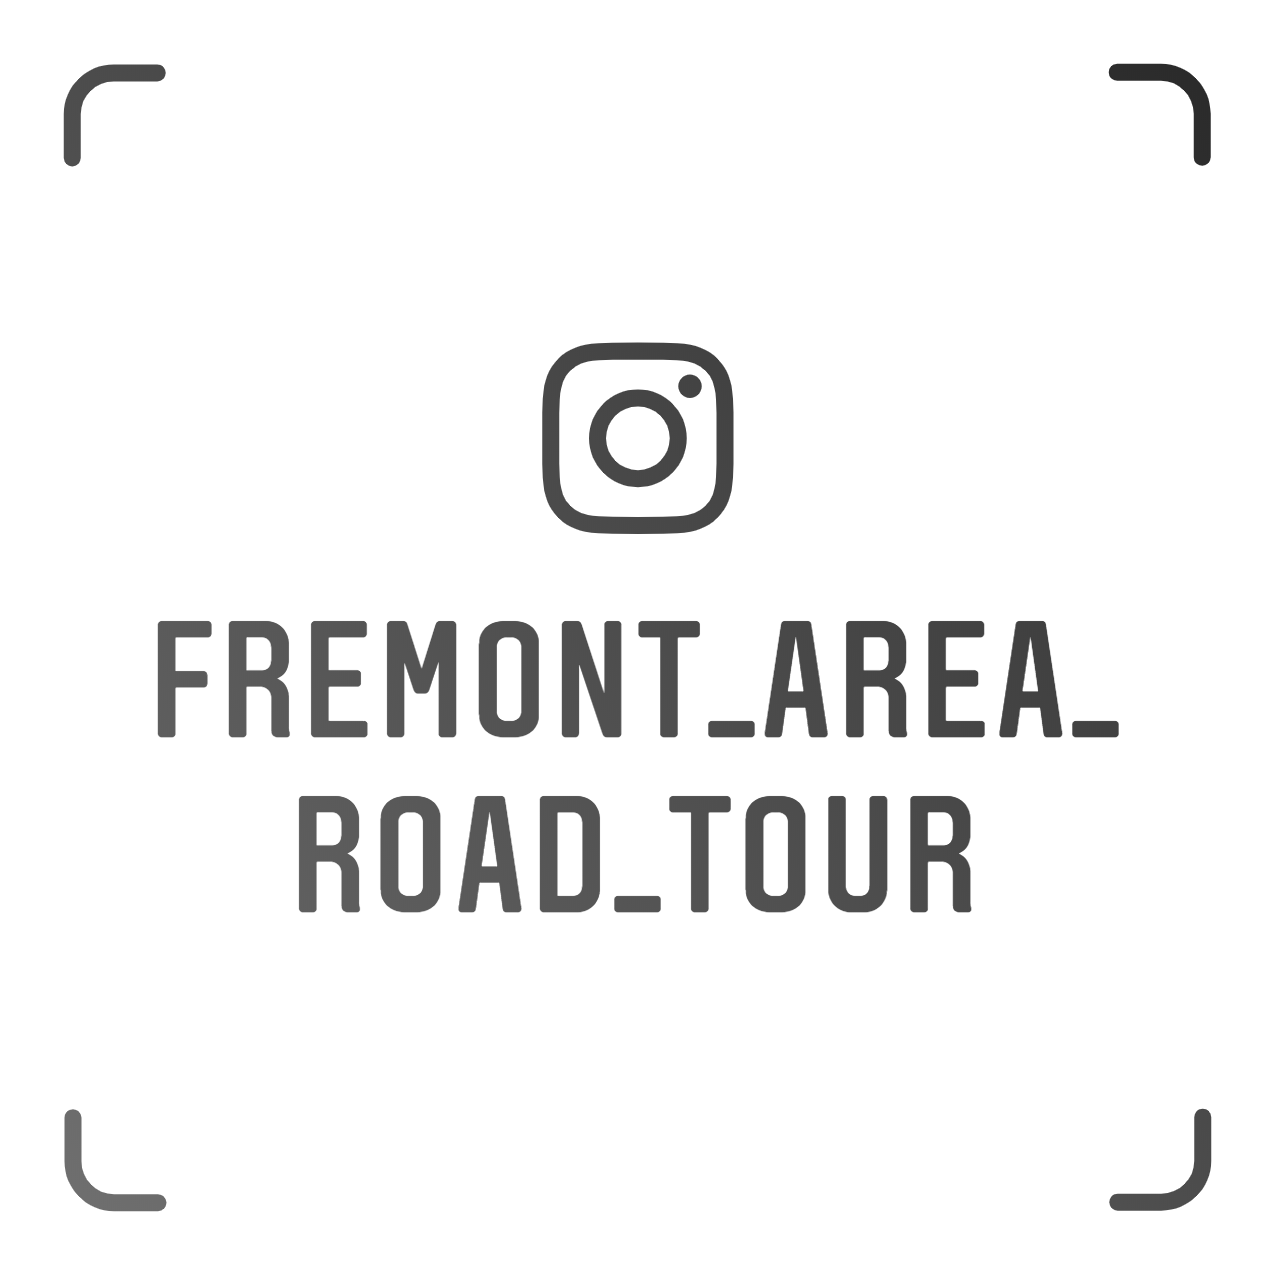 fremont_area_road_tour_nametag.png